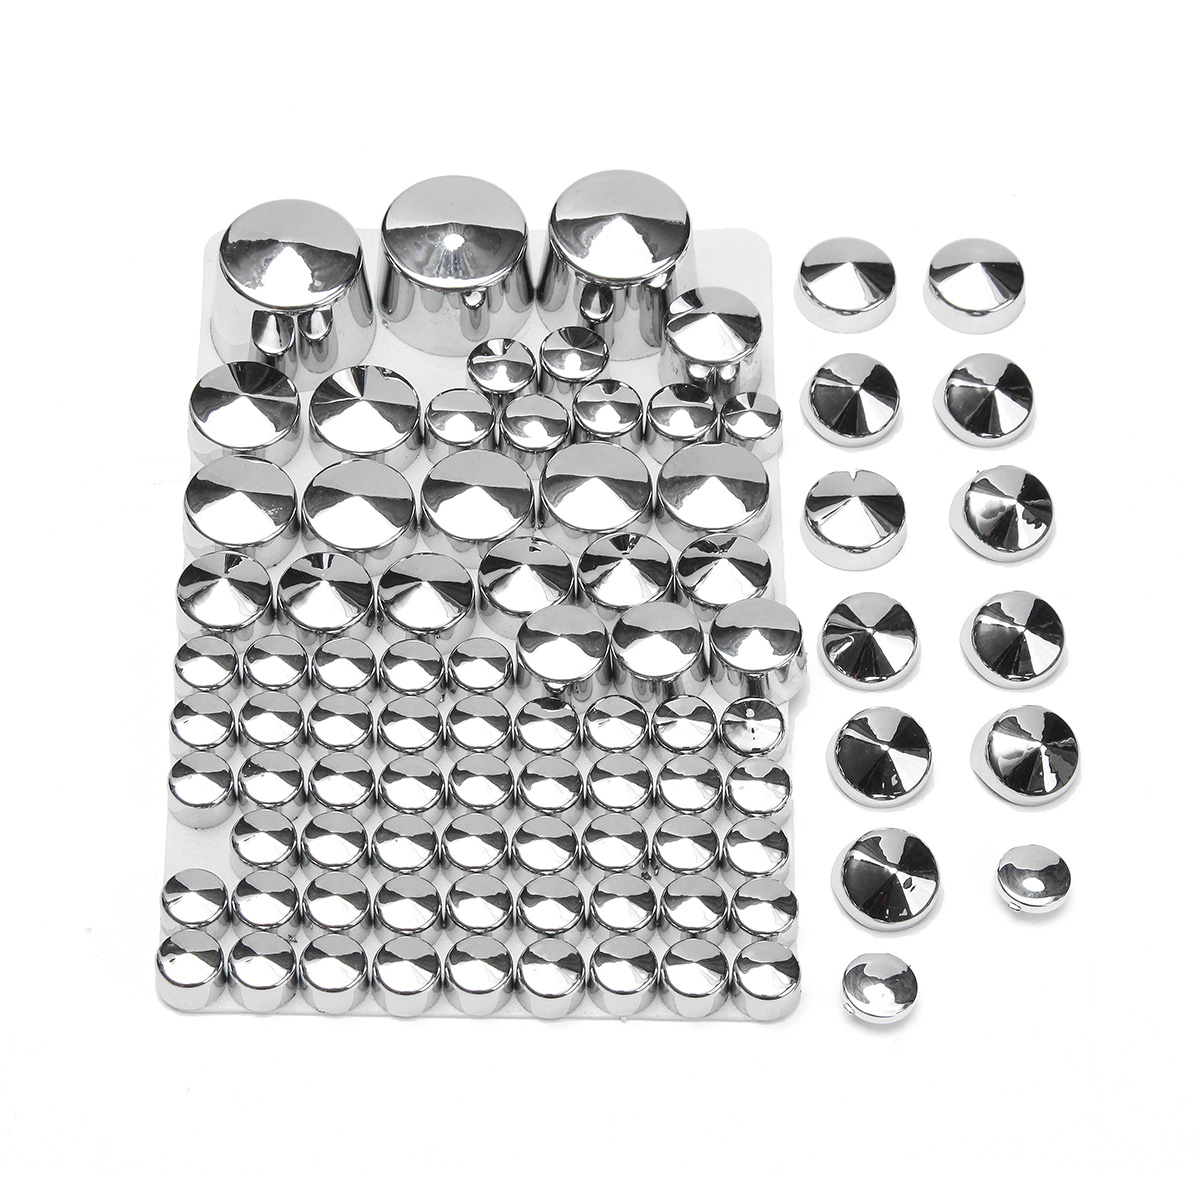 87pcs Chrome Motor Bolt Cover Accessories For Softail Twin Cam 1984-2006